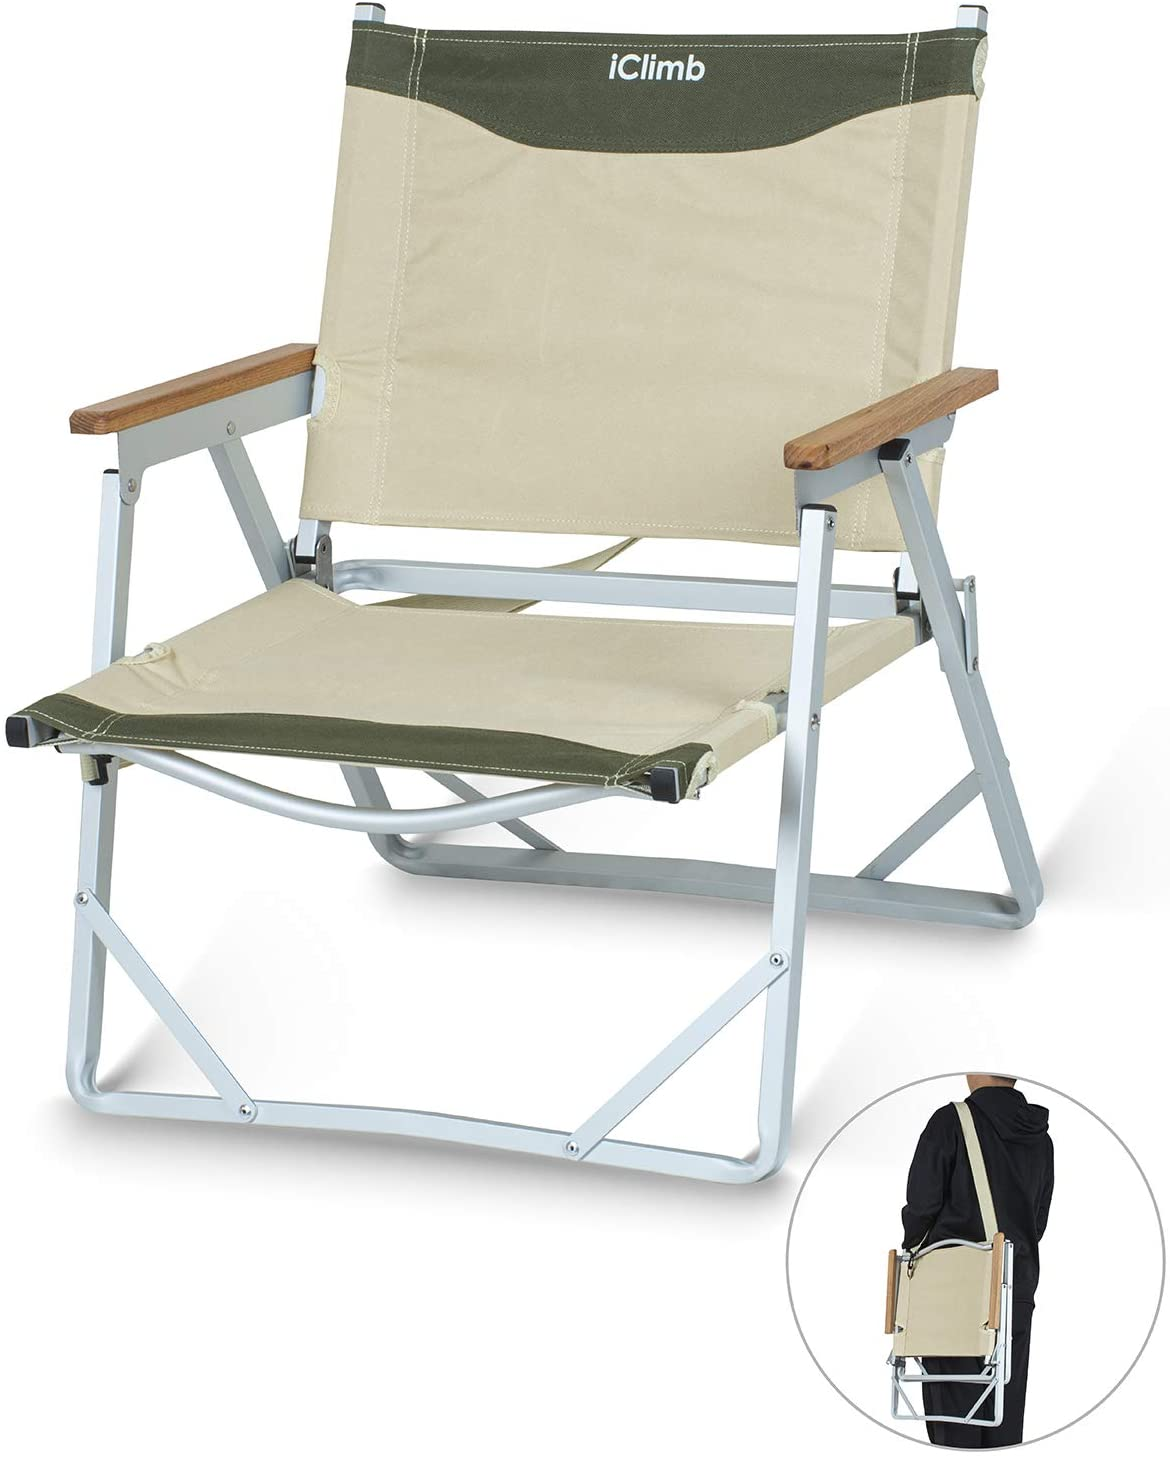 iClimb Ultralight Low Beach Concert Camping Folding Chair with Handle and Shoulder Strap (Beige)